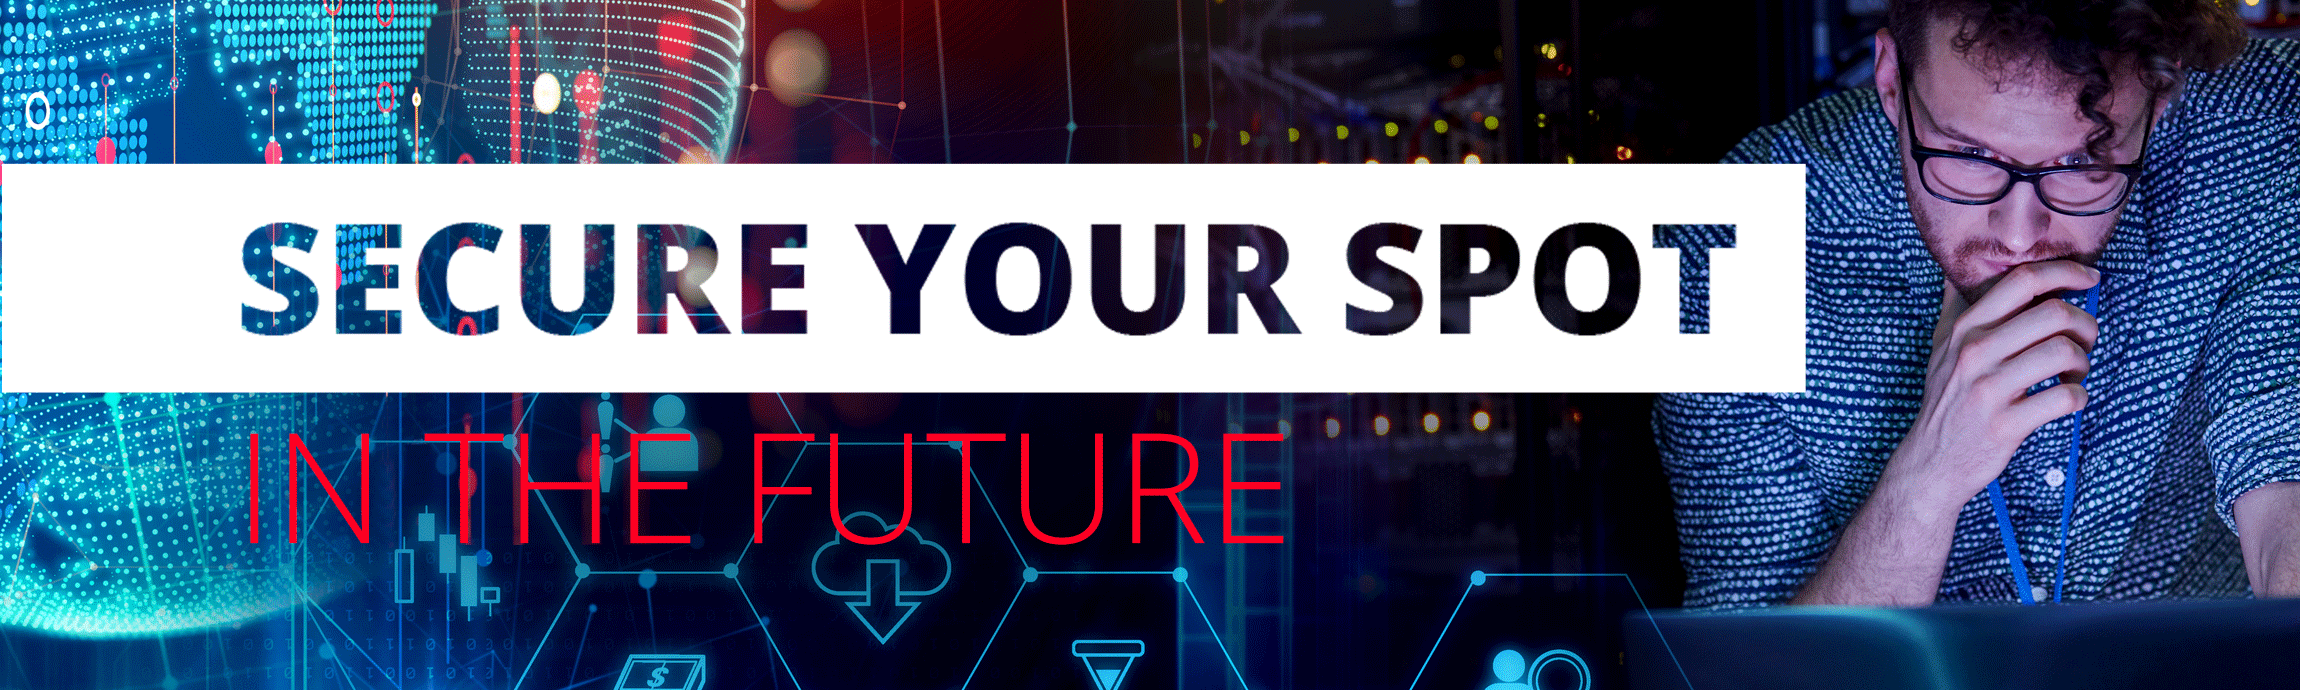 Secure your spot in the future